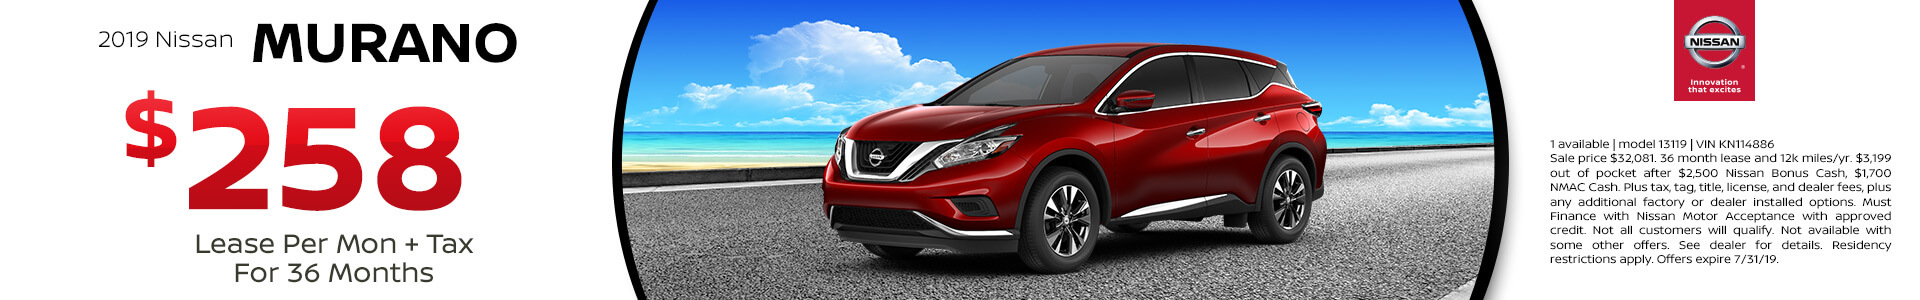 2019 Nissan Murano Lease for $258